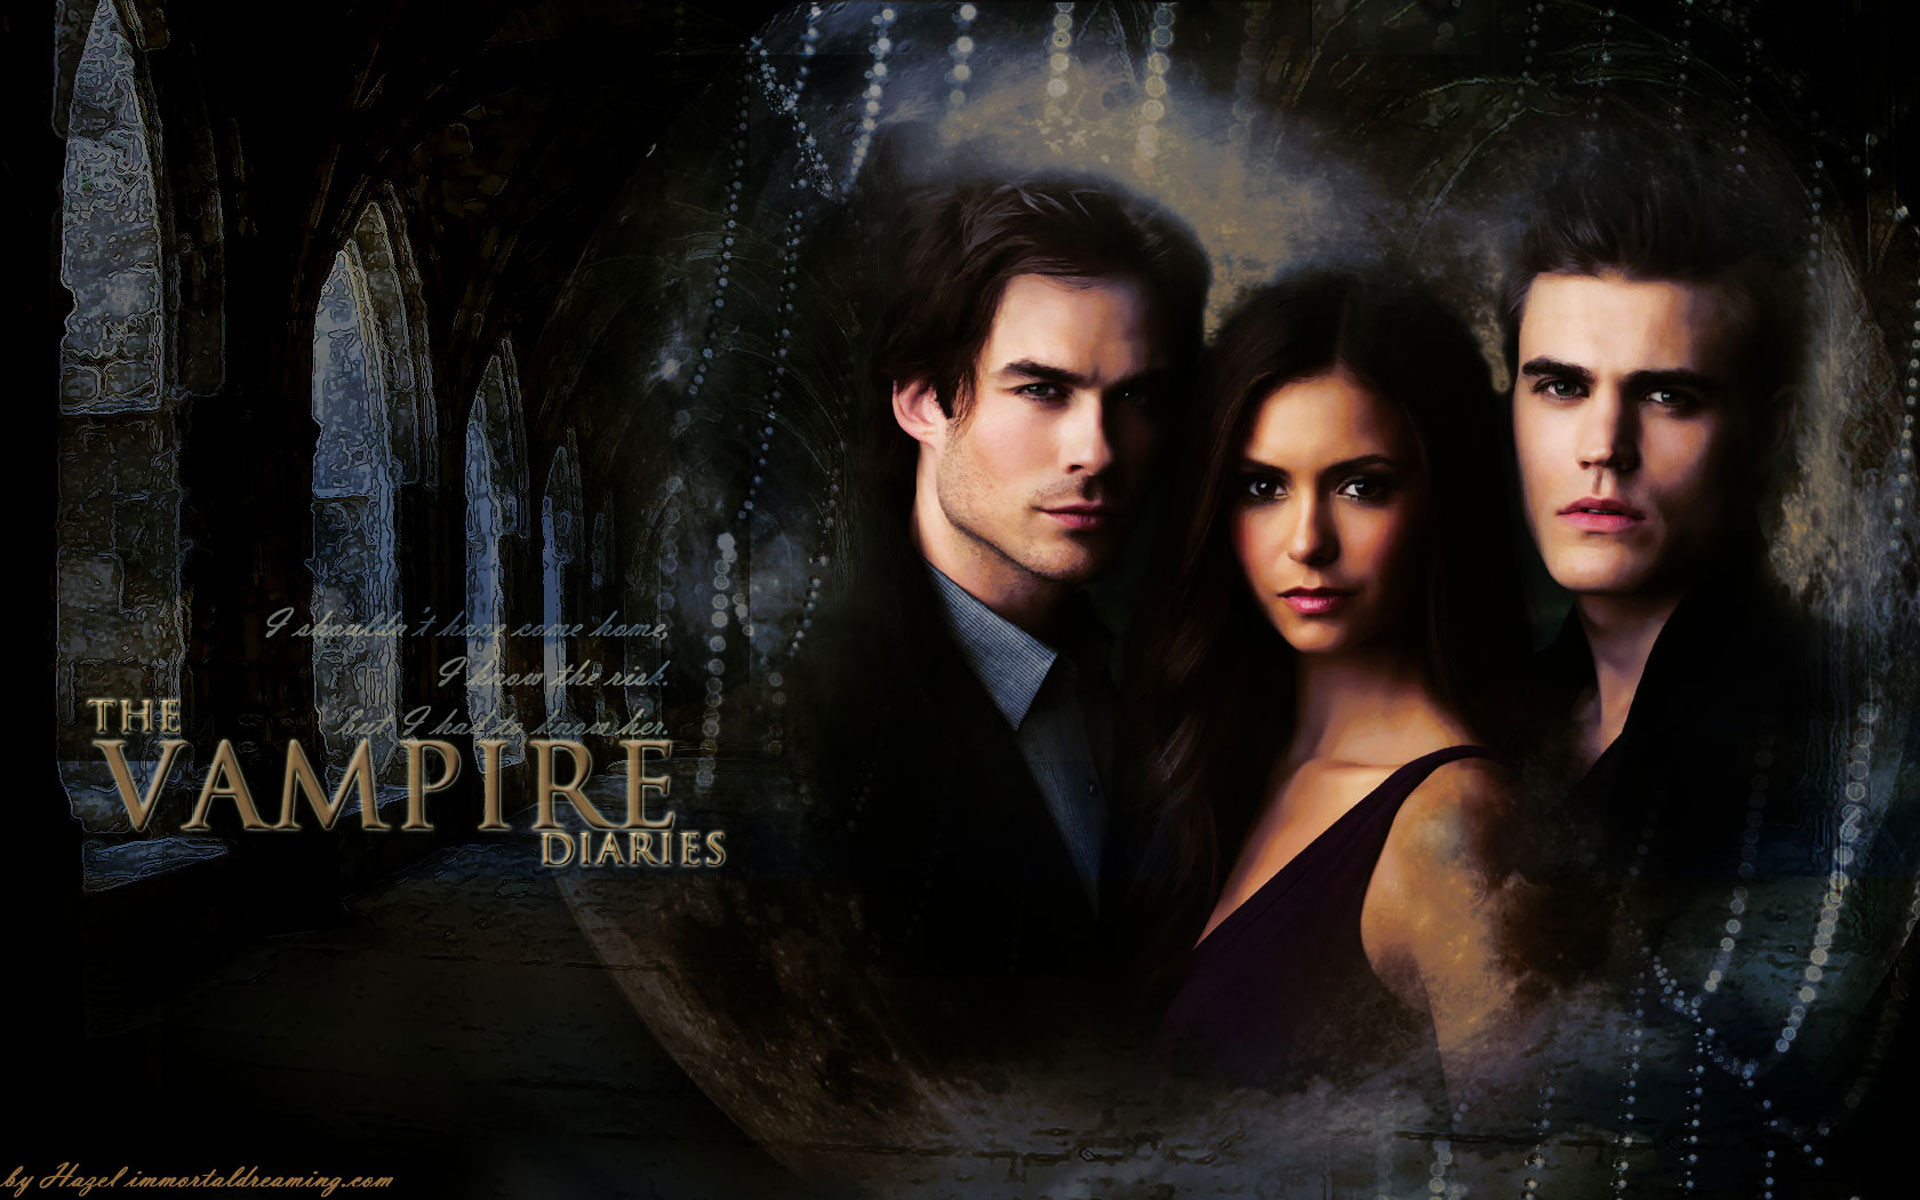 Wallpaper The Vampire Diaries: Damon Salvatore Vampire Diaries Wallpaper (76+ Images